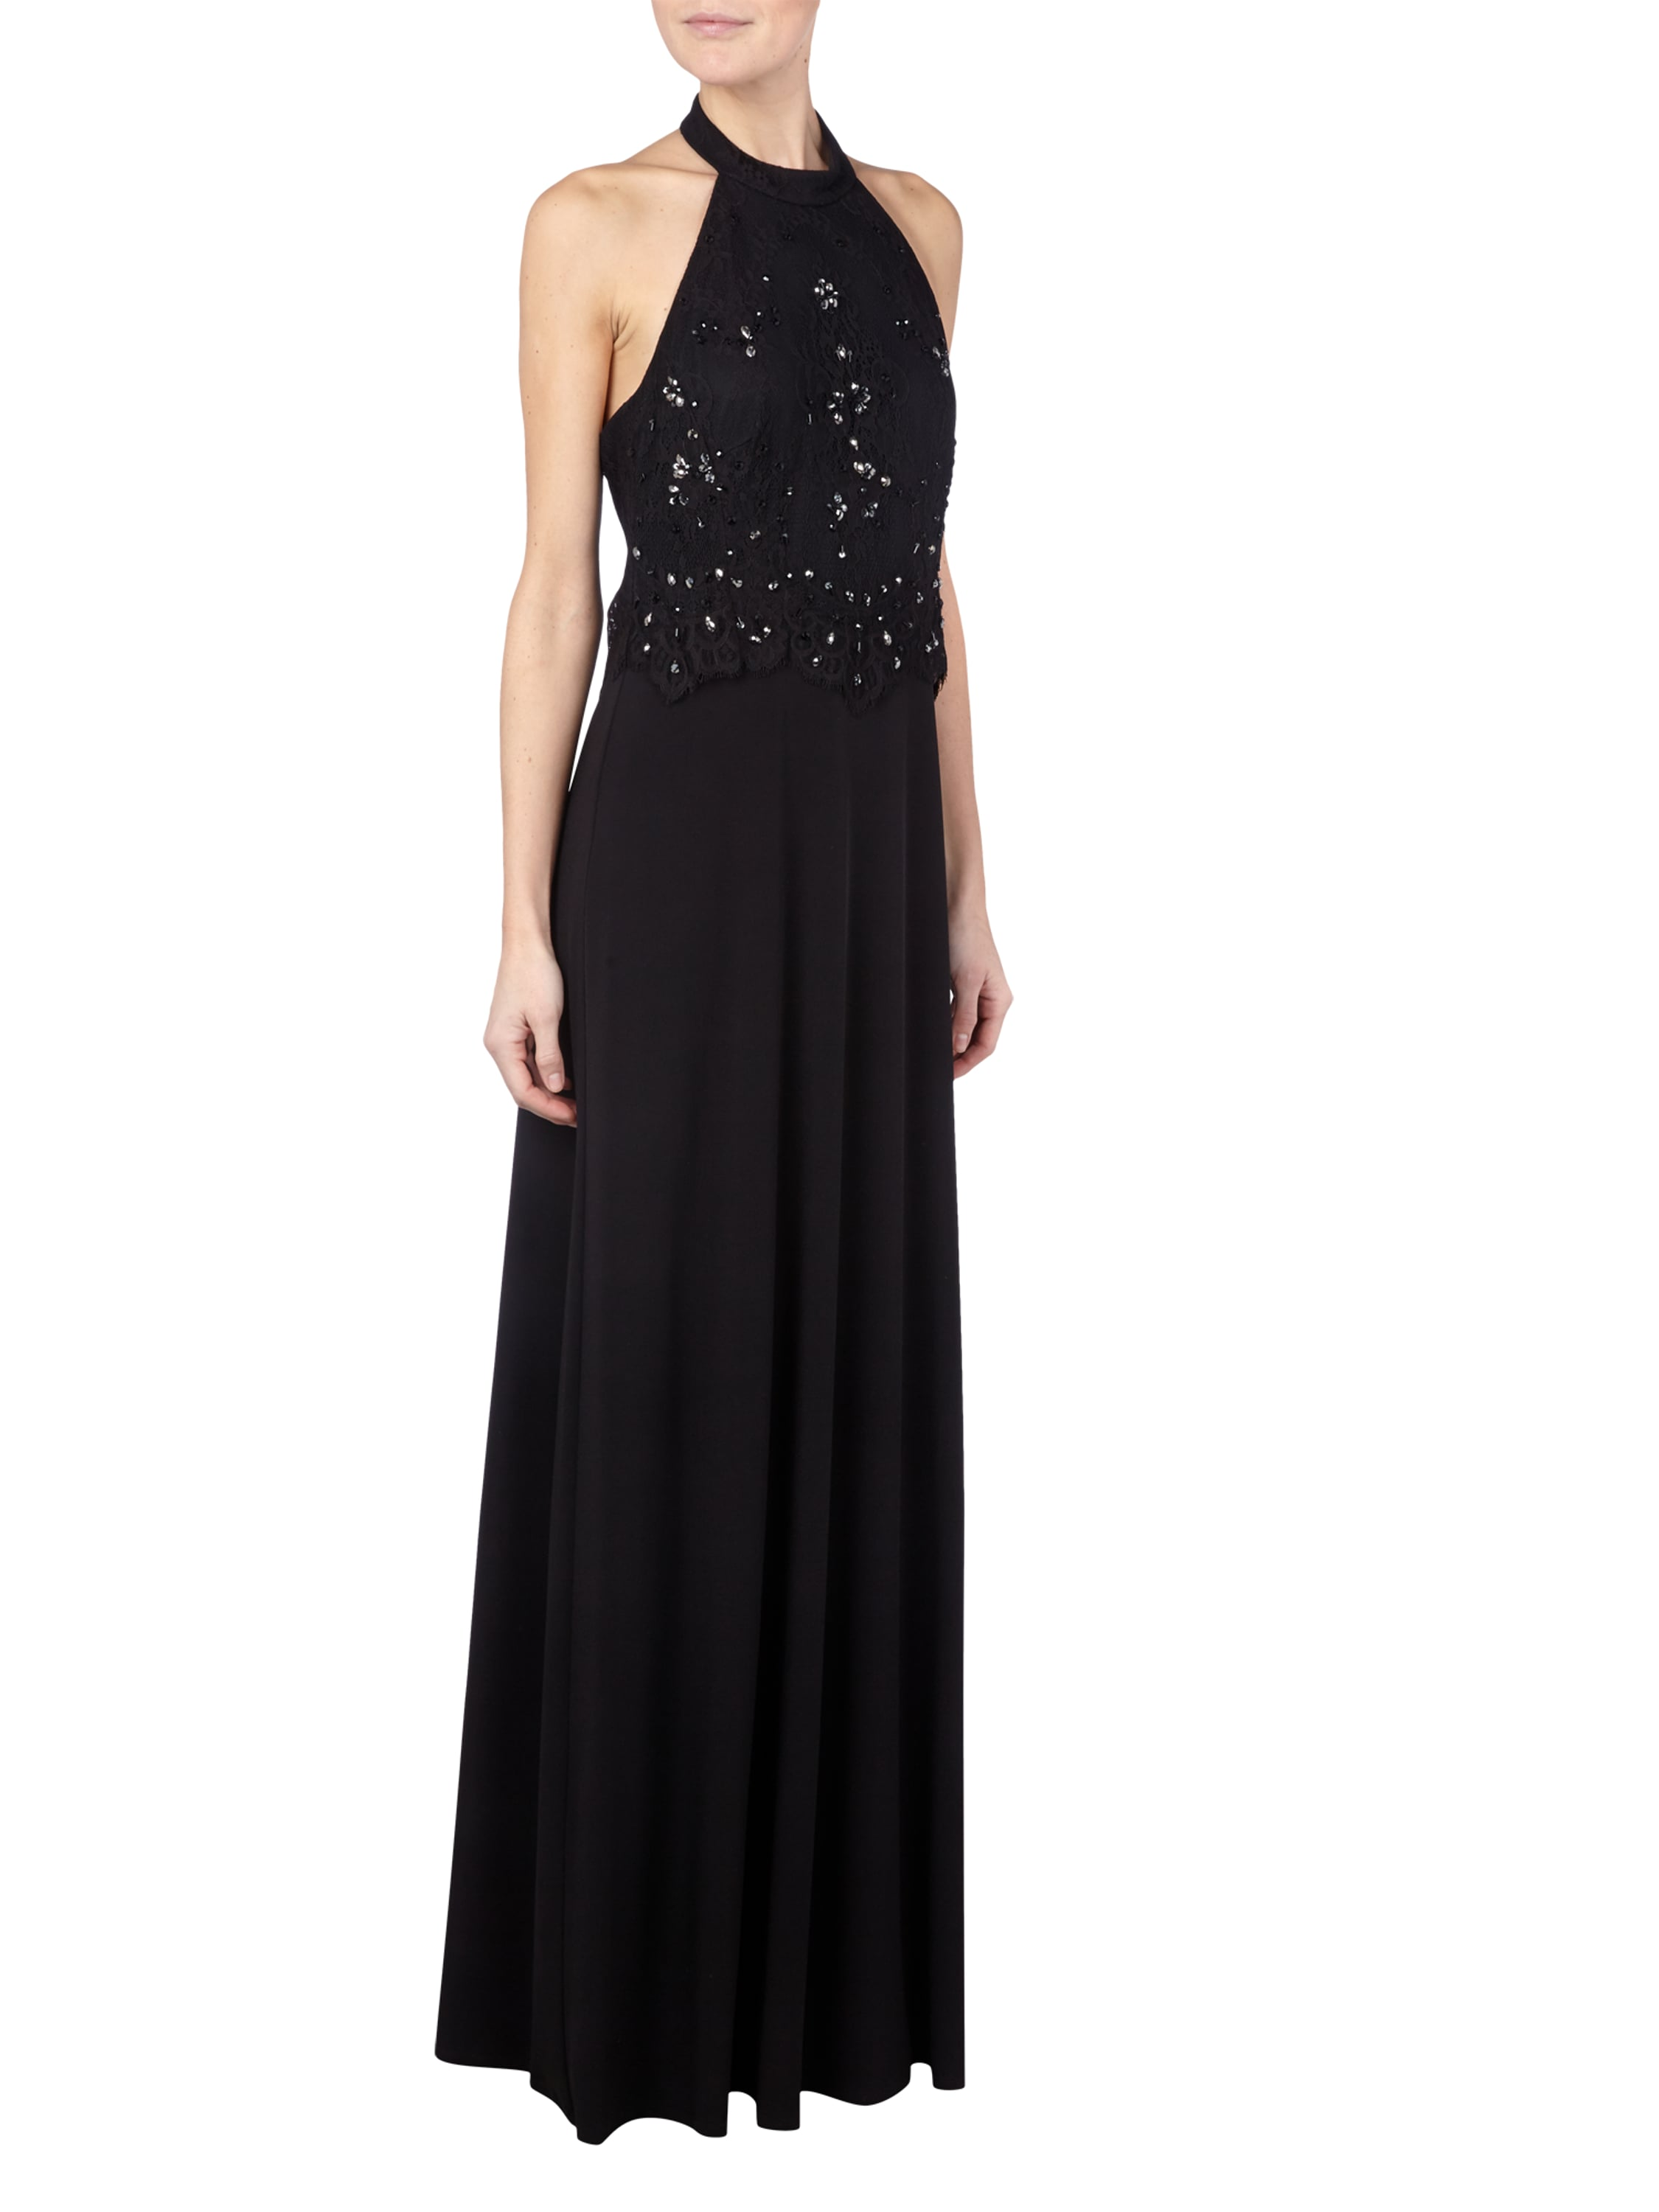 Abendkleid Mit Collierkragen. jakes collection abendkleid mit ...